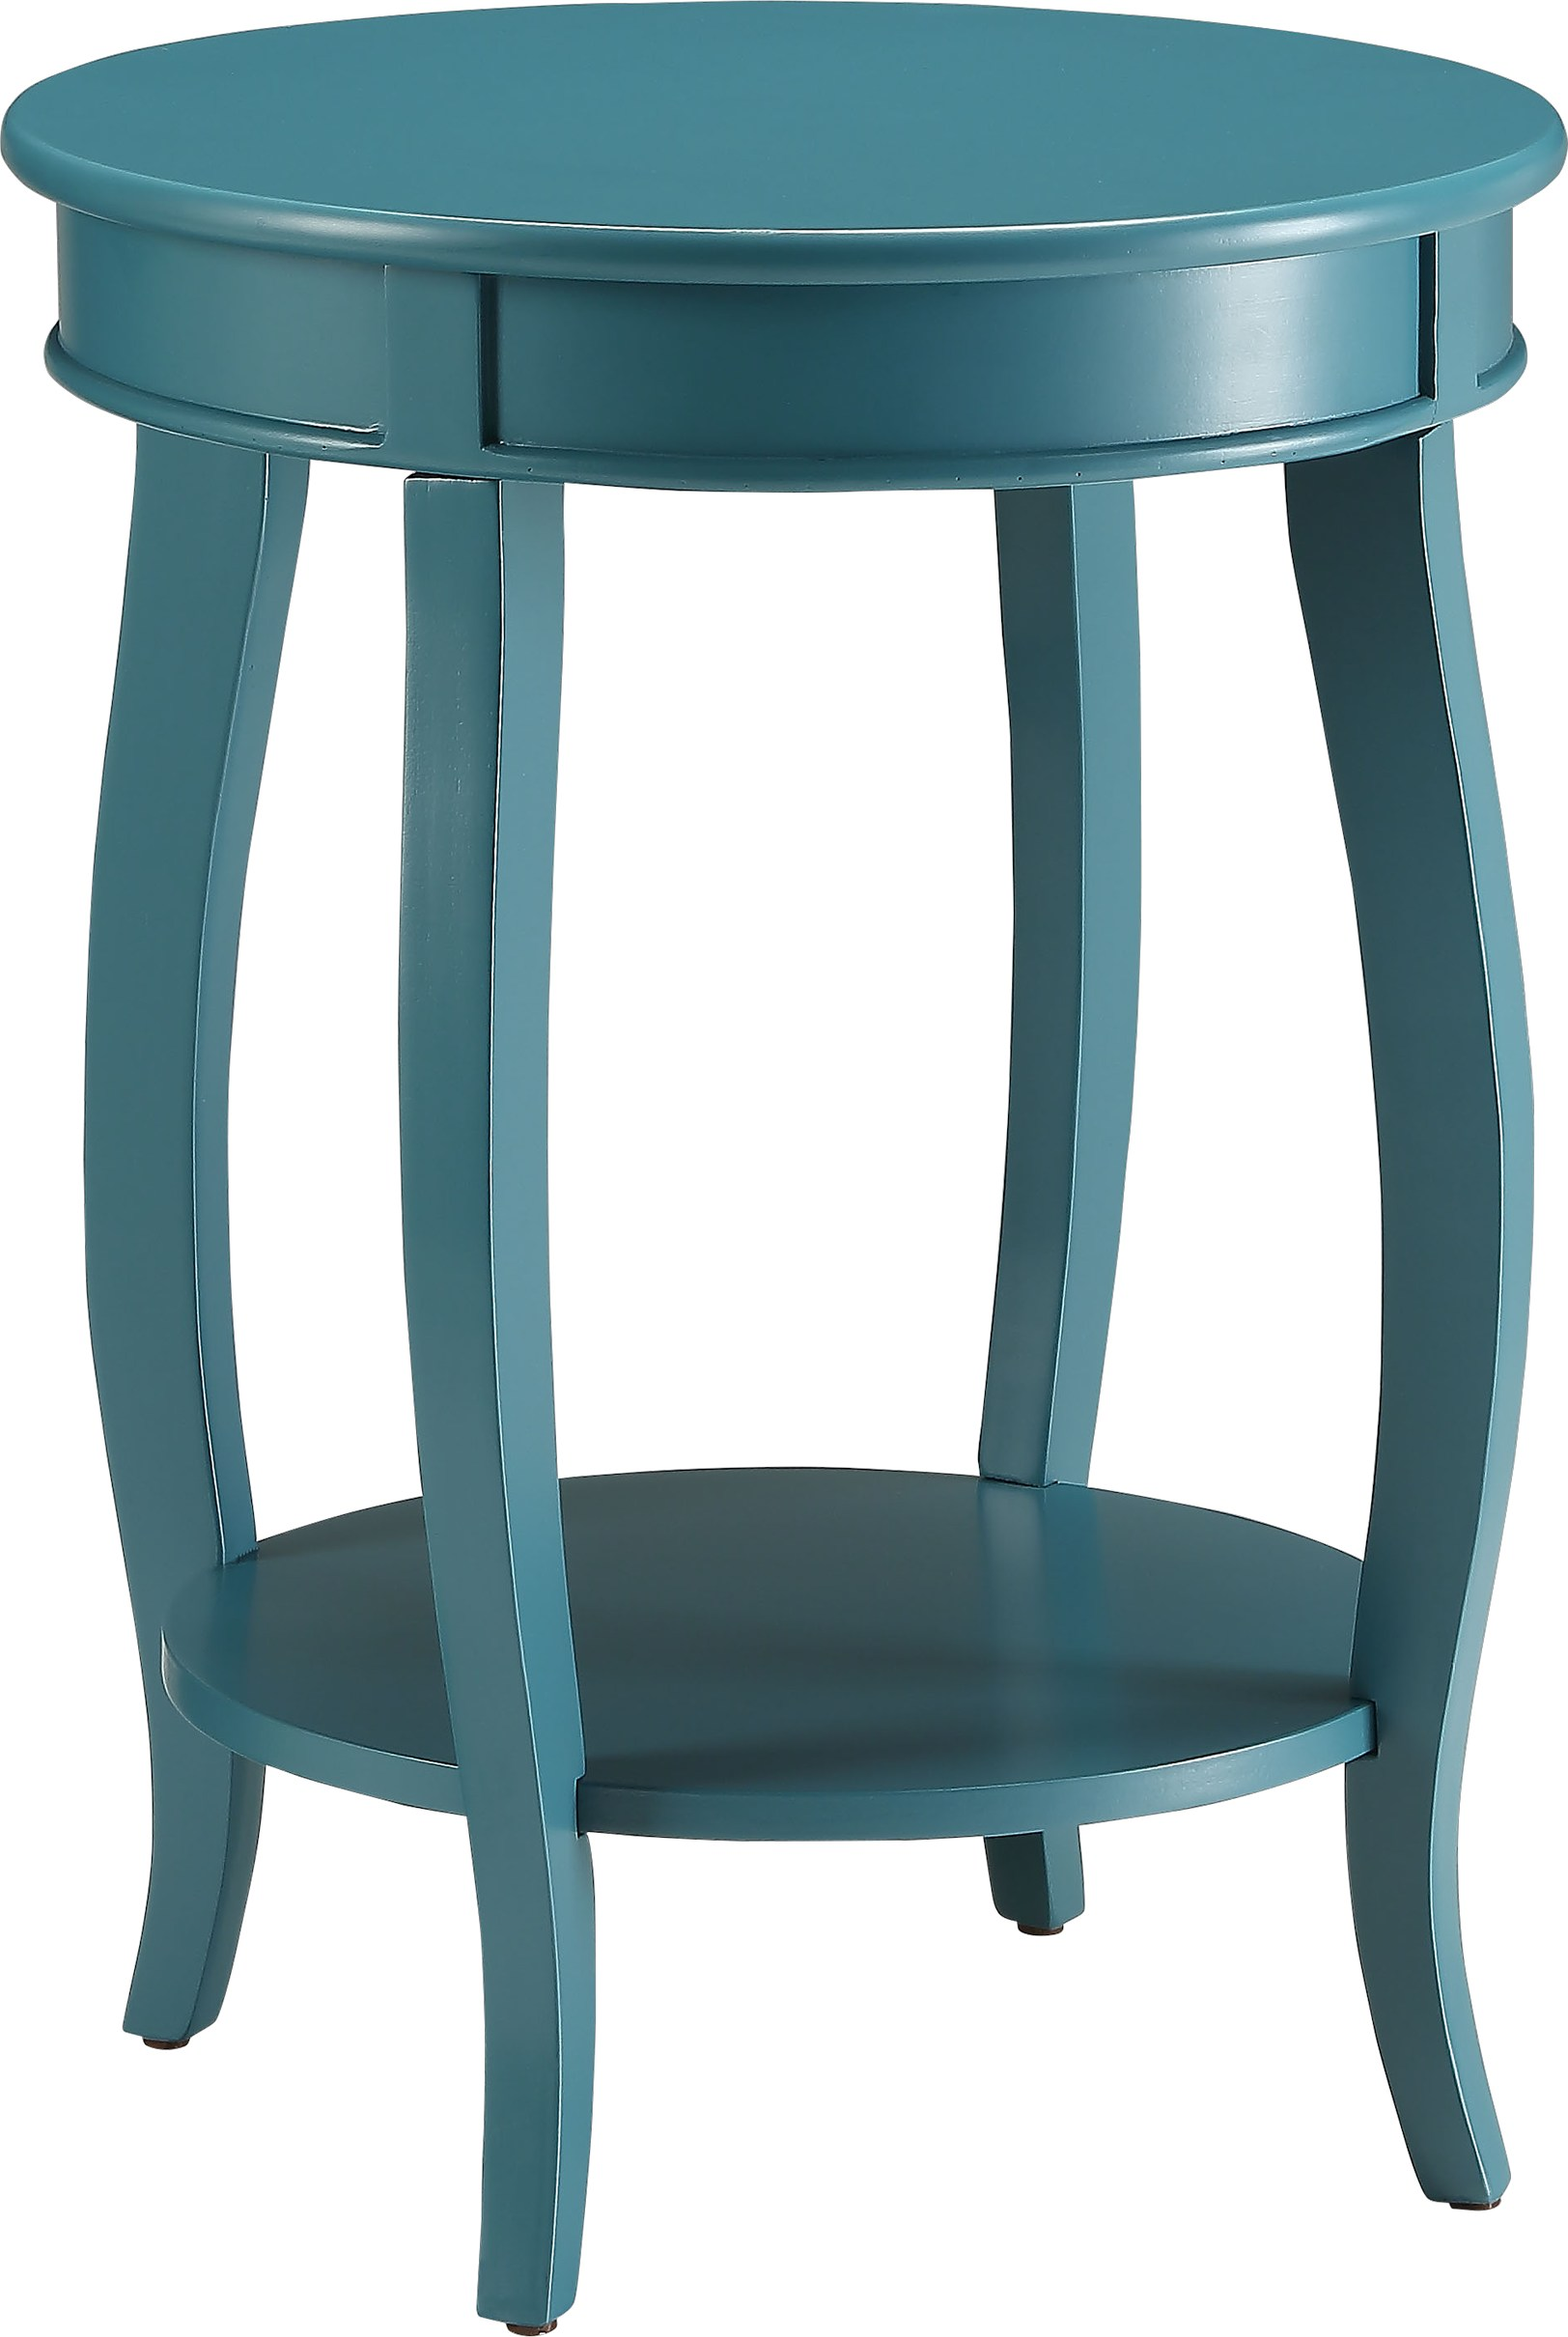 chloris blue accent table tables colors teal clear plastic mirrored tray pedestal kitchen counter height bar resin wicker furniture diy patio umbrella stand demilune console round